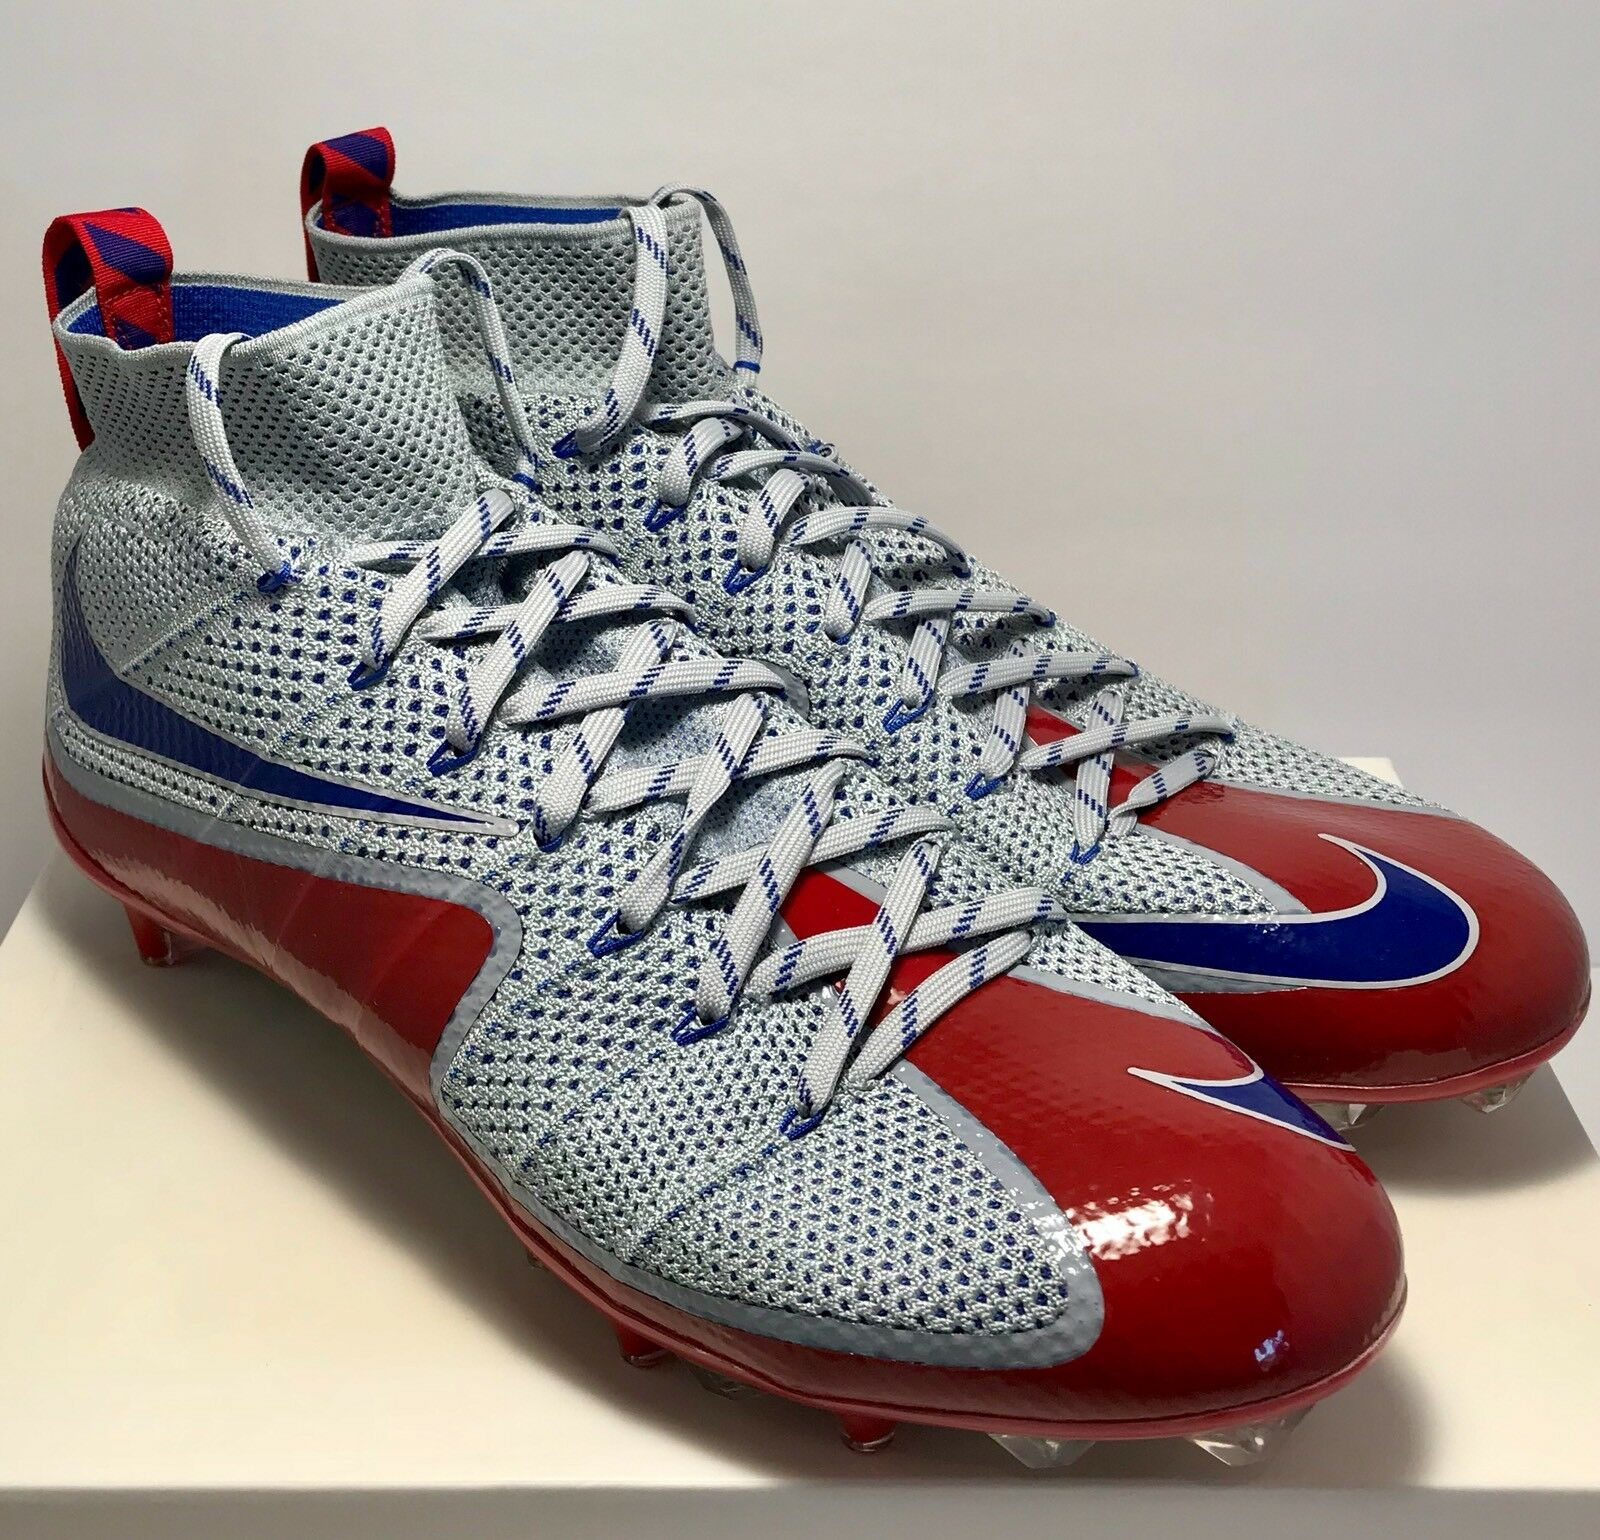 $220 Nike Mens Size 14 Untouchable 1 Wolf Grey Red Blue Football Cleats Rare New